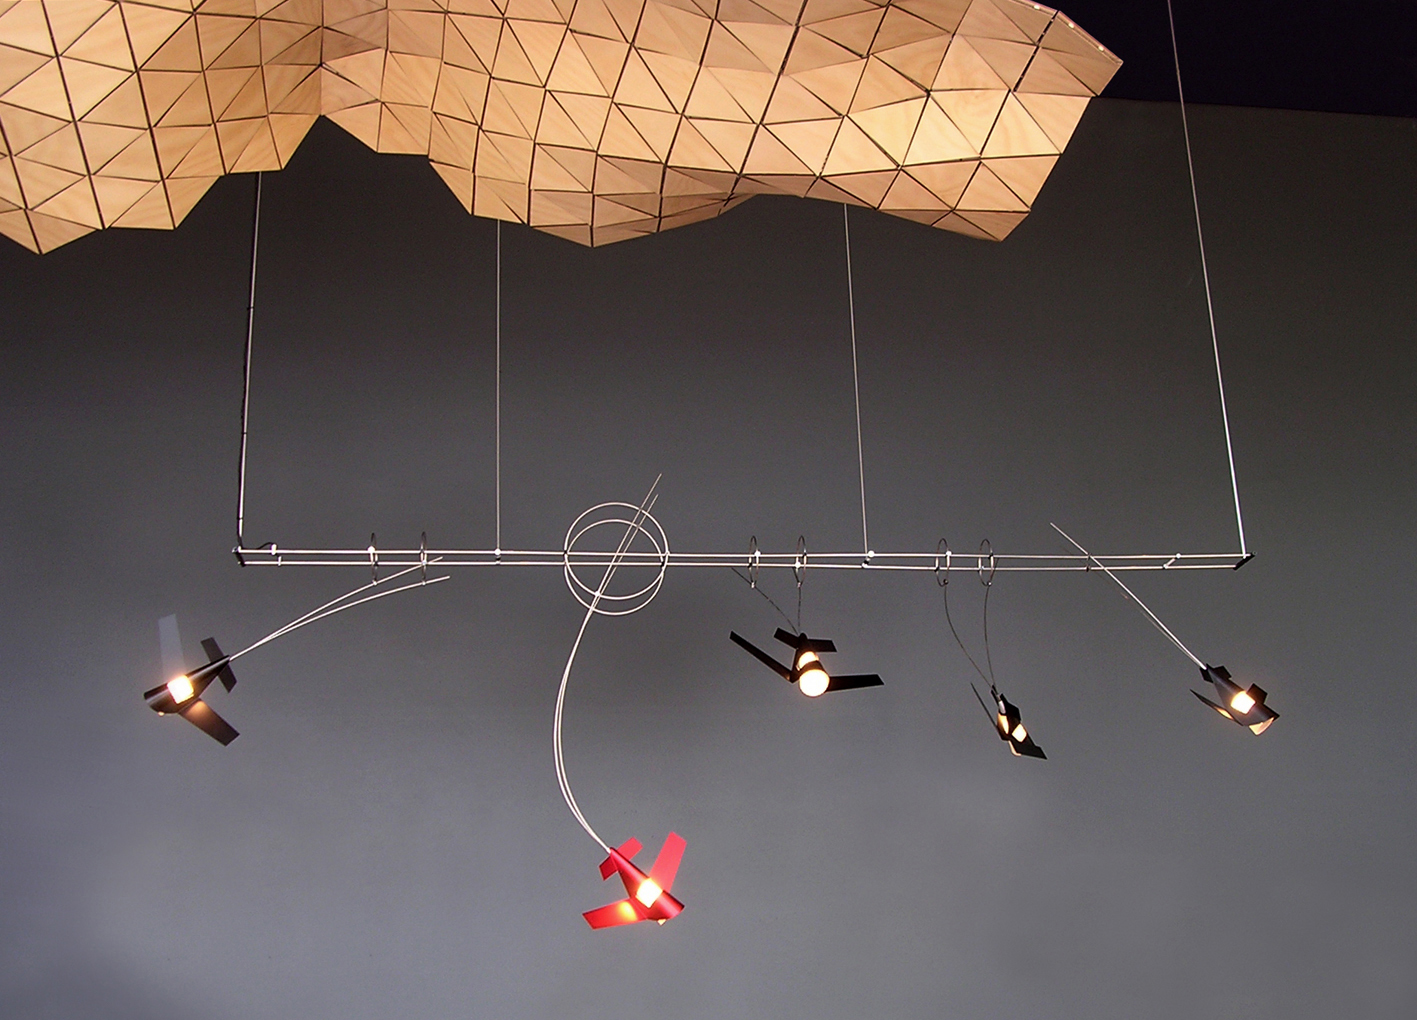 Event Surface | 2003 | Plywwood | 2M x 1.2M   Aerial Light #1  | 2005 | Stainless Steel, Anodised Aluminium, Glass | 2M